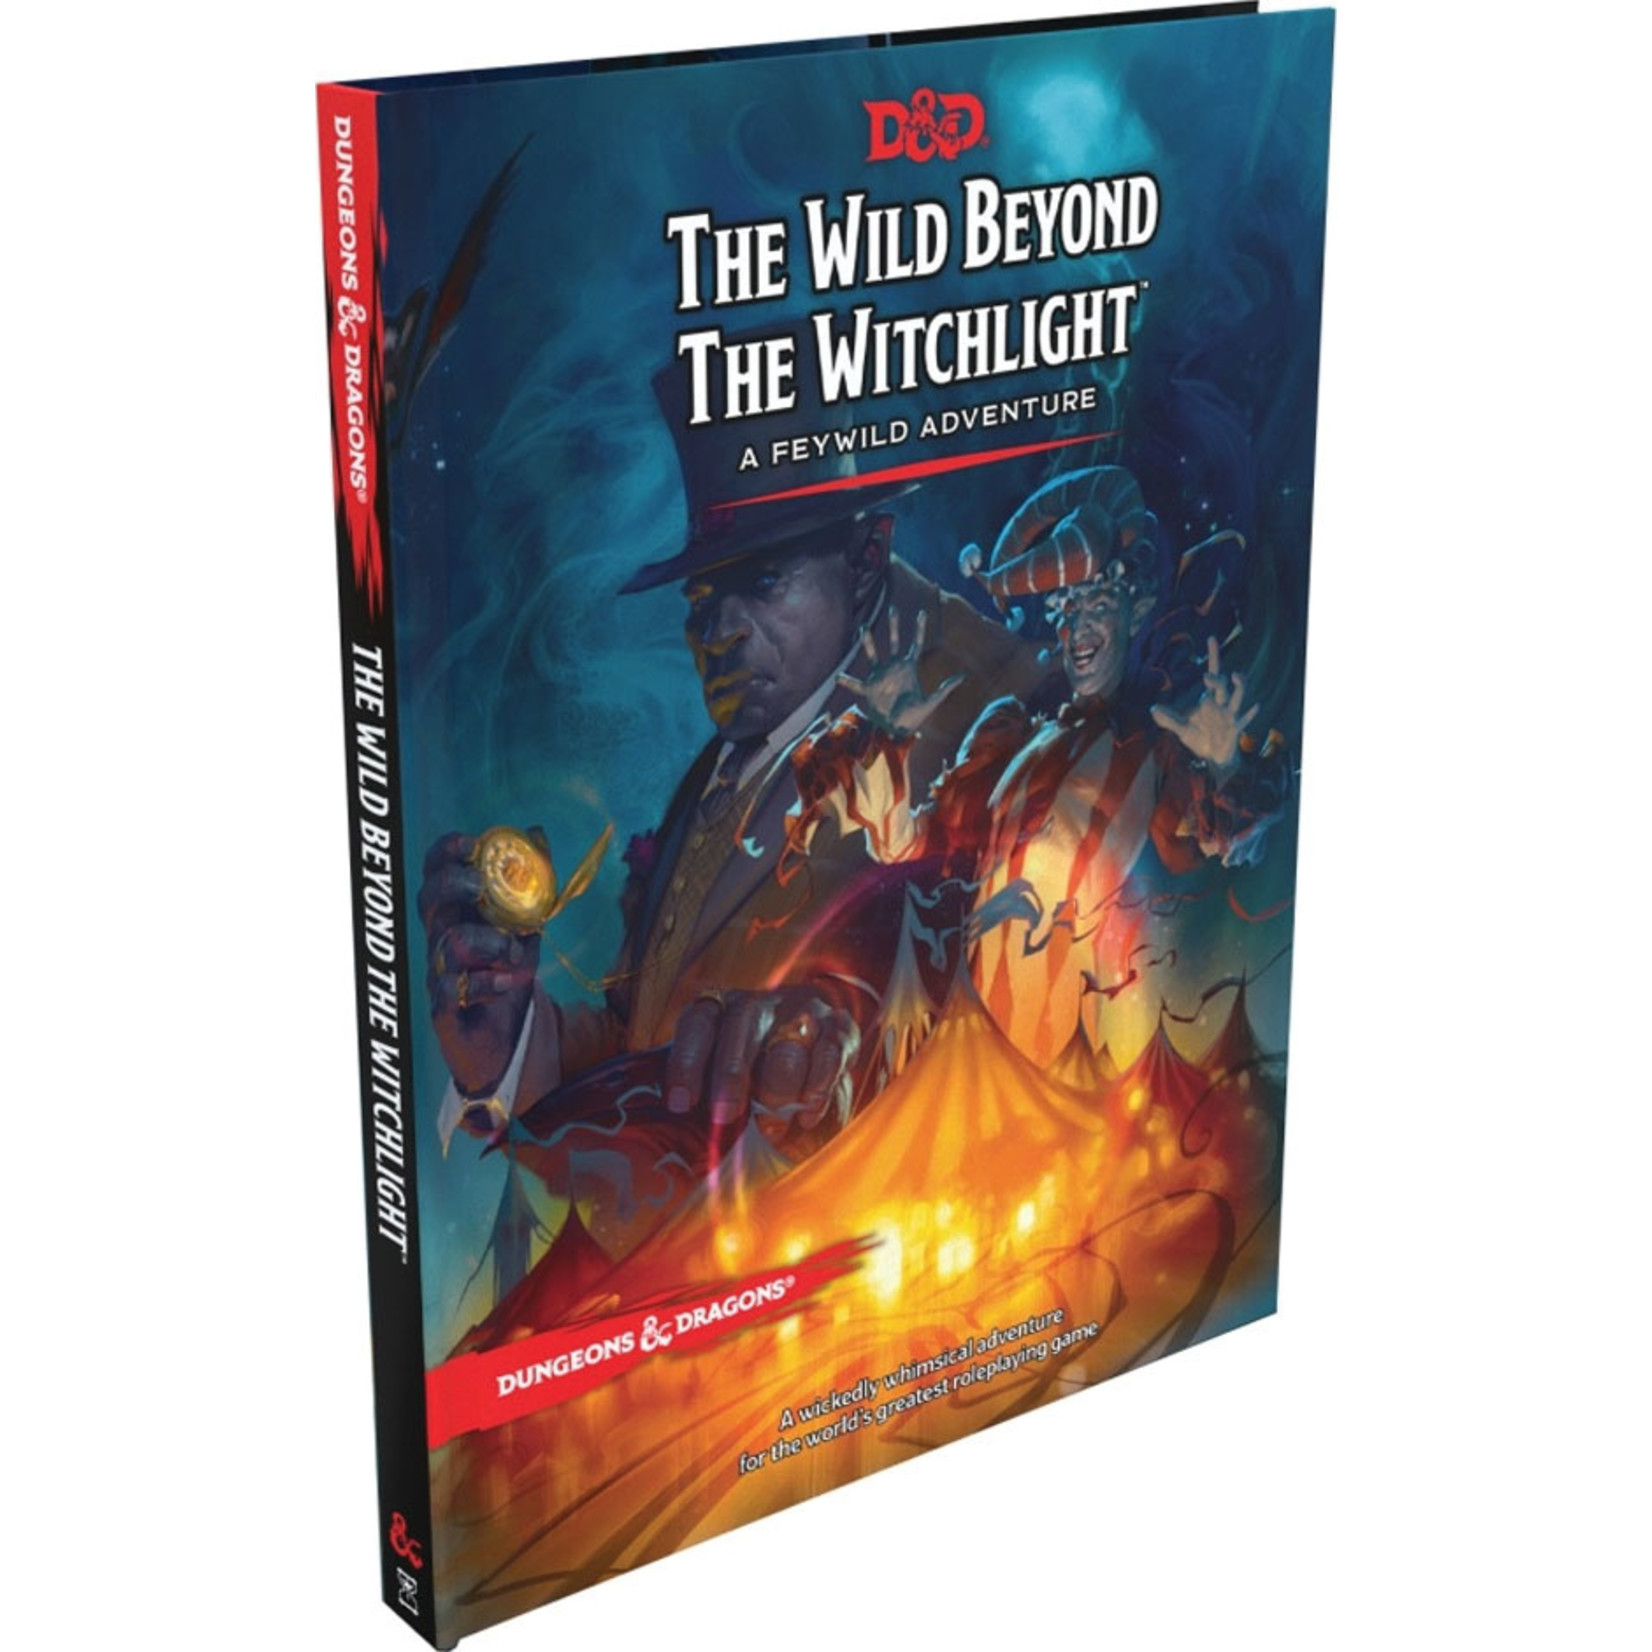 Dungeons and Dragons RPG: The Wild Beyond the Witchlight - A Feywild Adventure